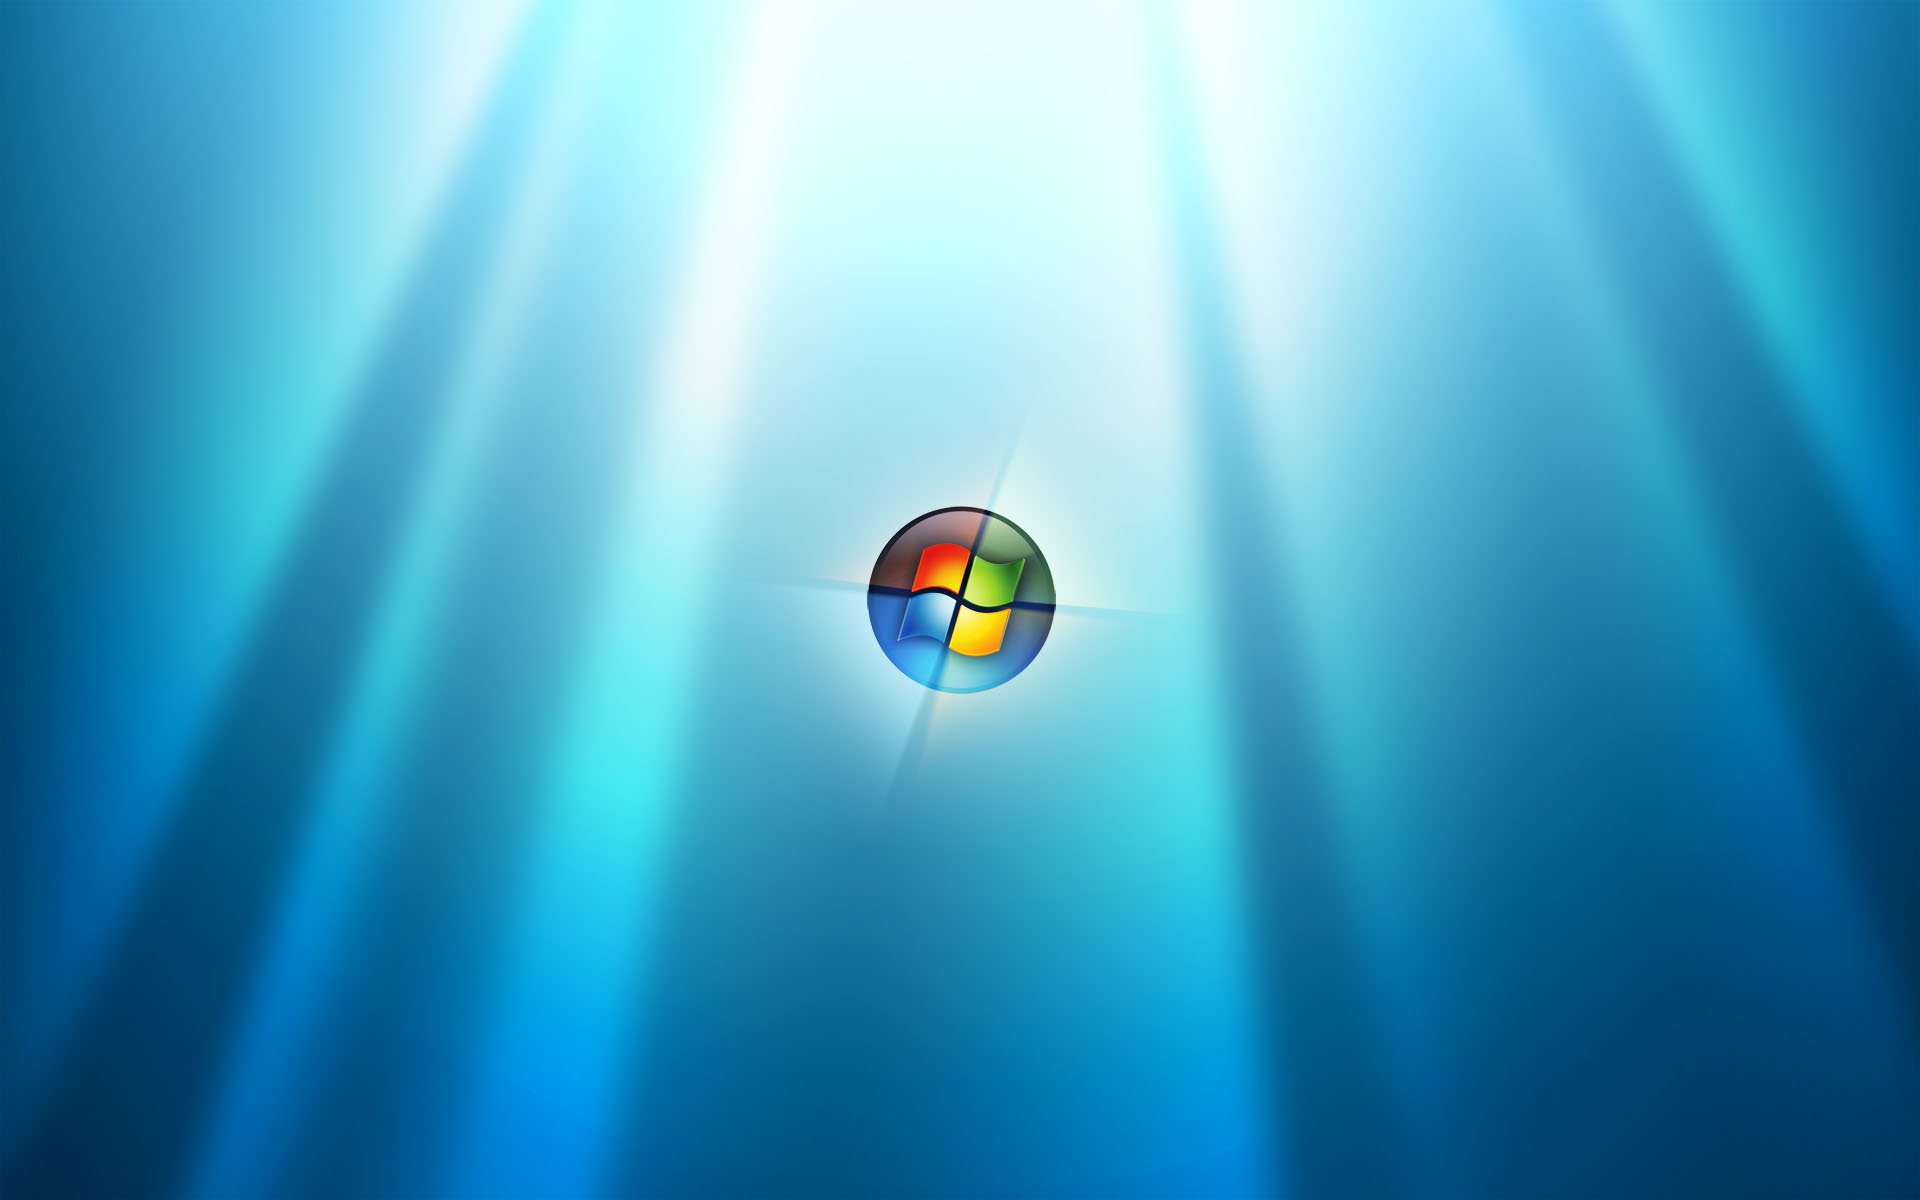 Technology - Windows  Wallpaper